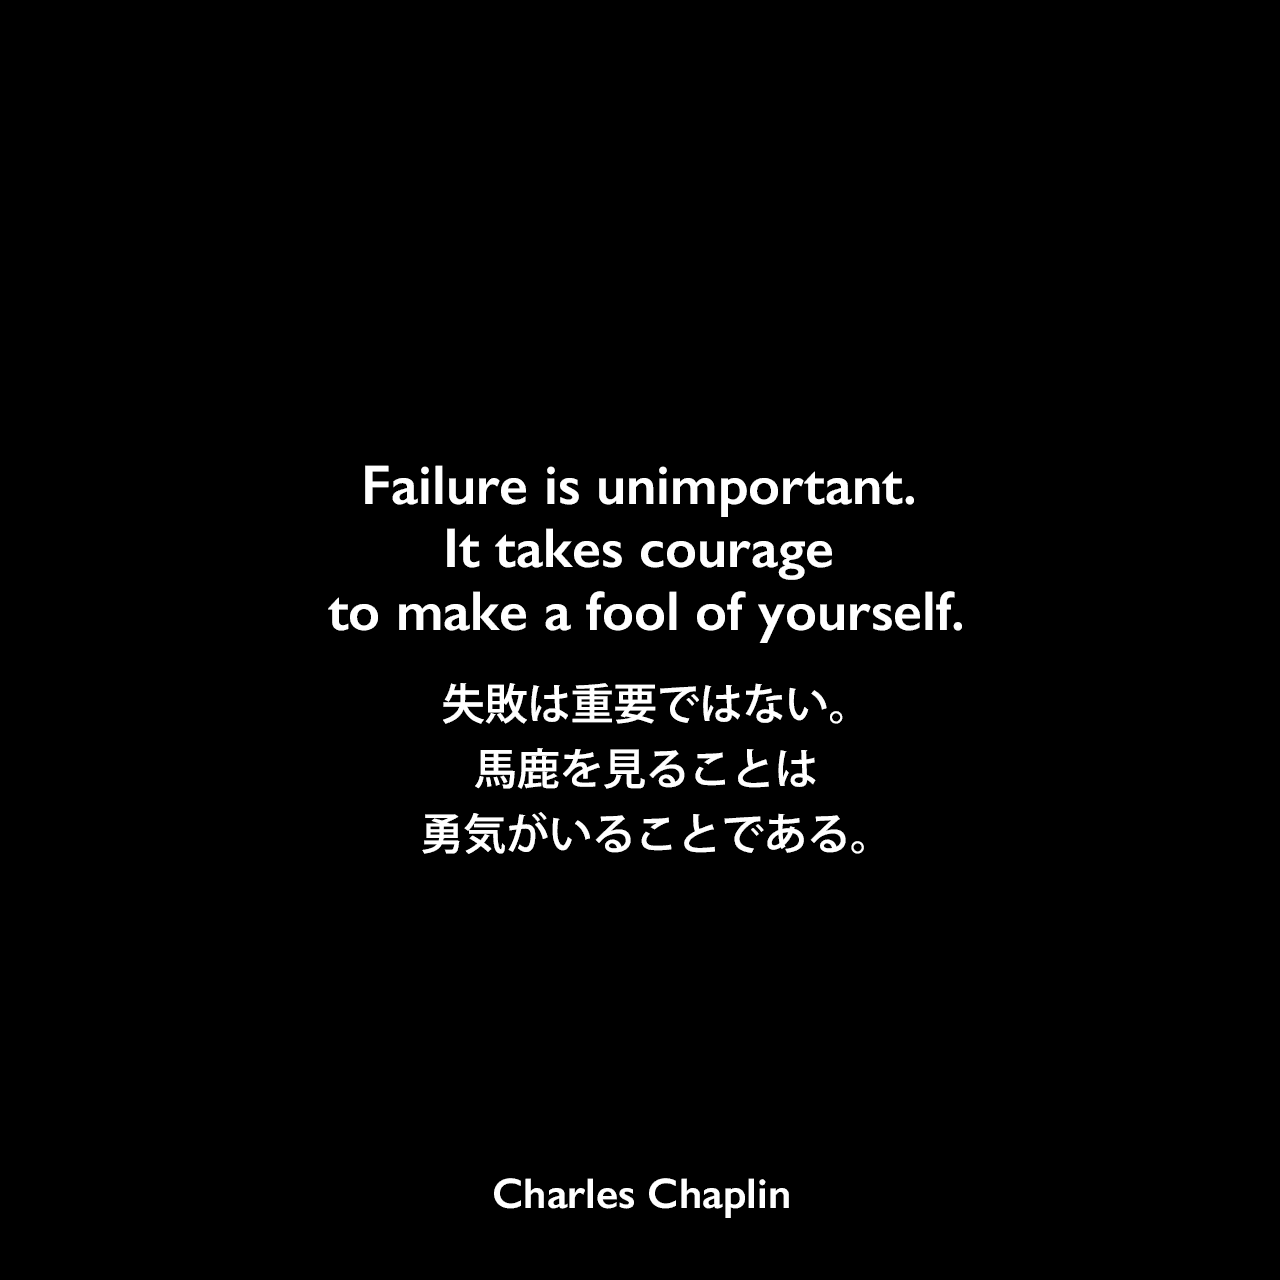 Failure is unimportant. It takes courage to make a fool of yourself.失敗は重要ではない。馬鹿を見ることは勇気がいることである。Charles Chaplin